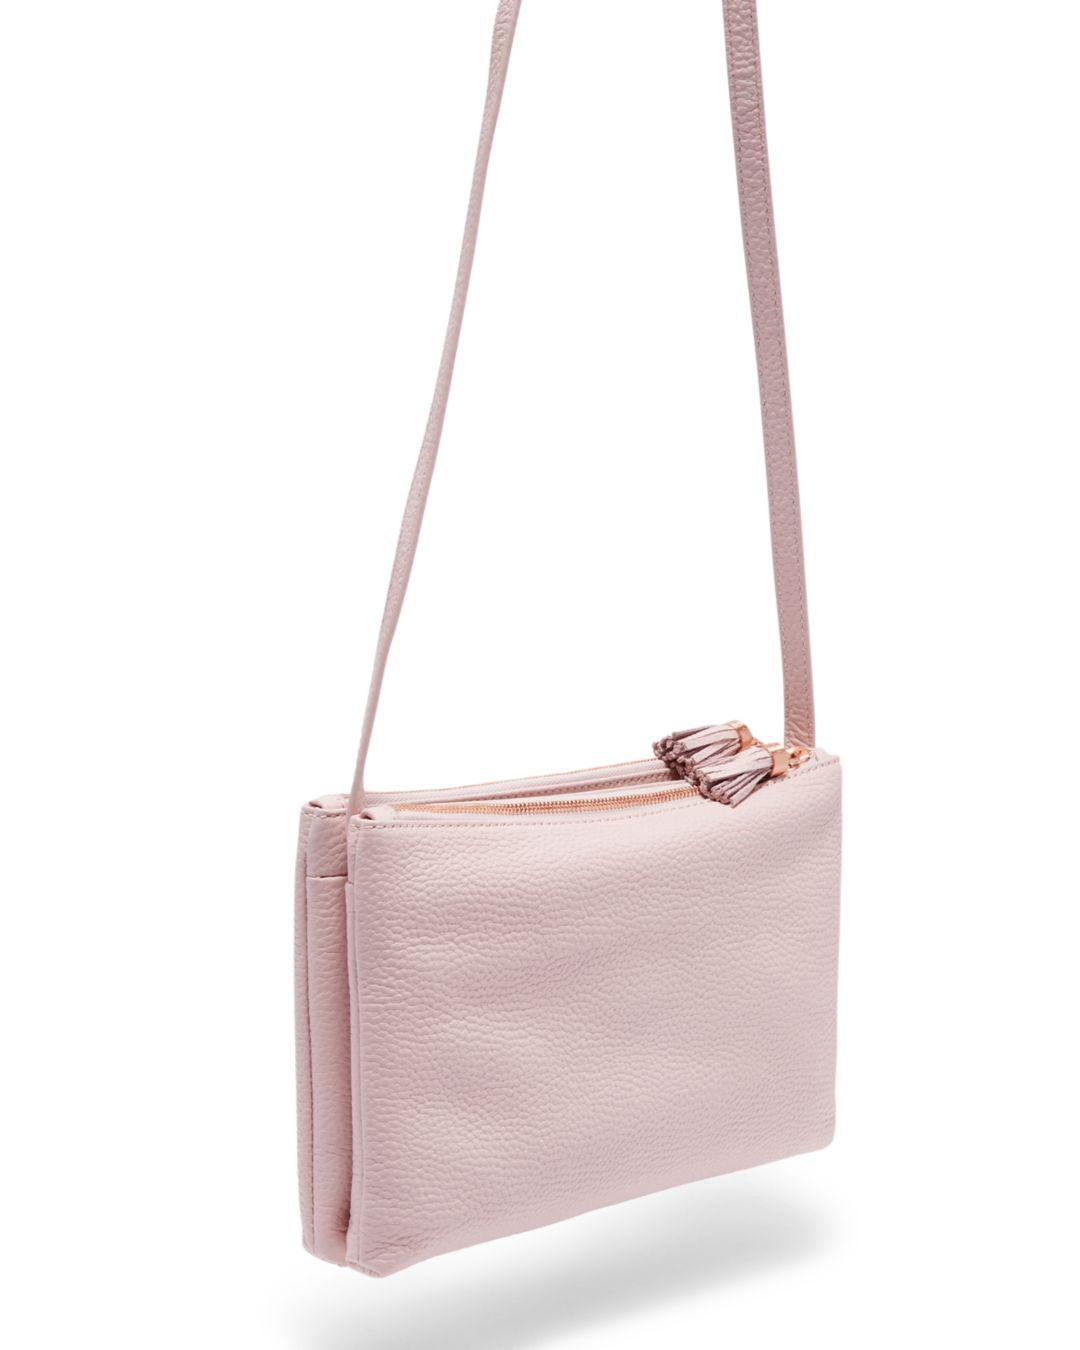 ee27adfafbe05e Lyst - Ted Baker Maceyy Medium Leather Crossbody in Pink - Save 48%